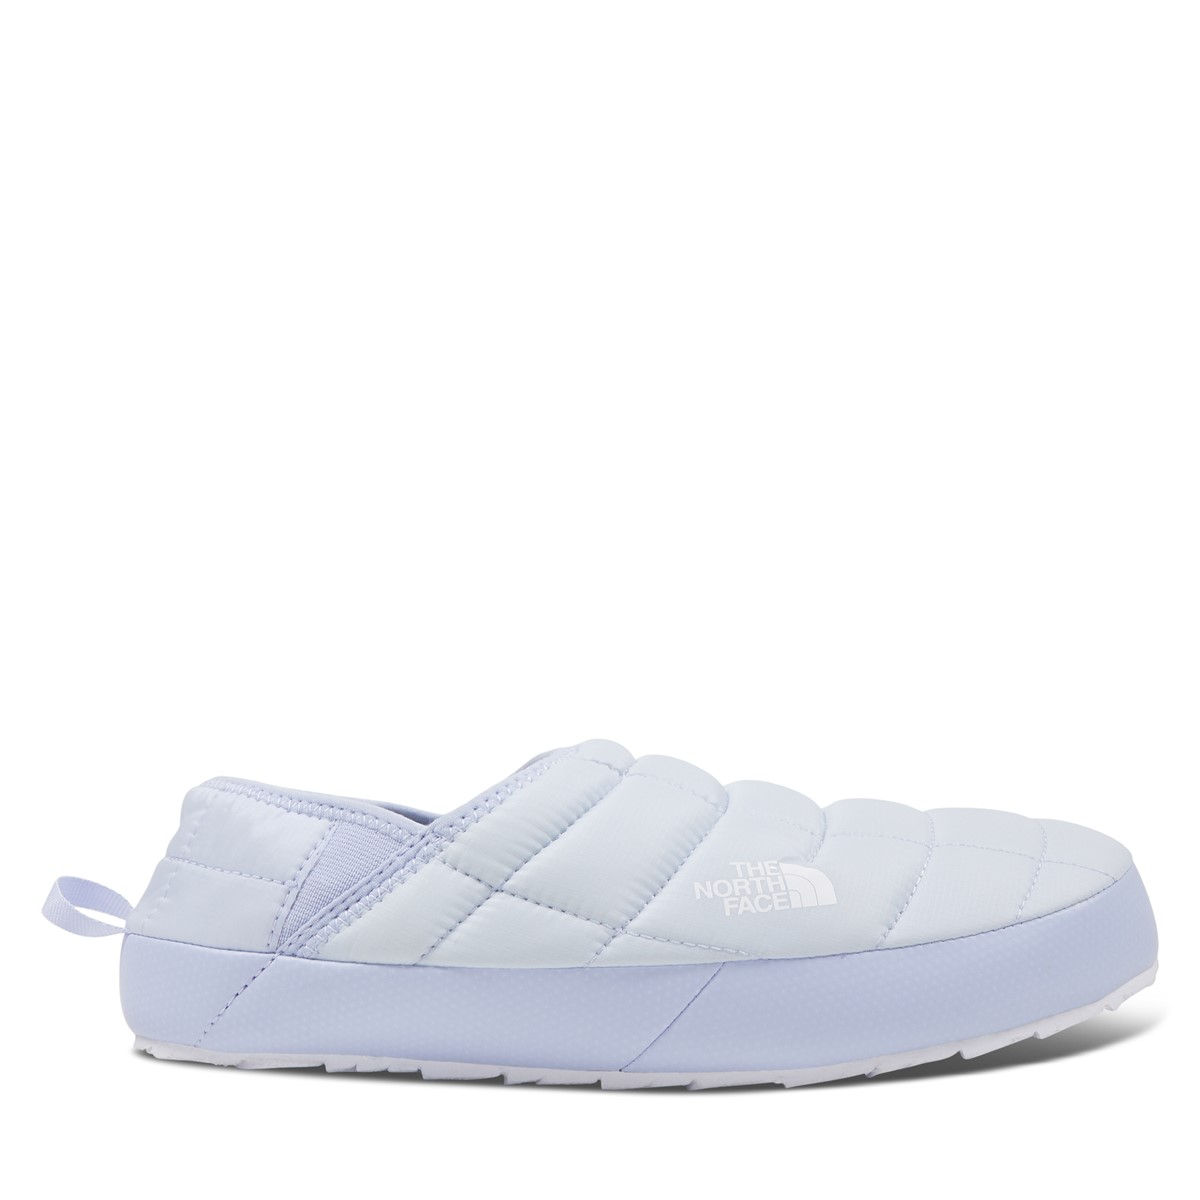 Women's Thermoball Traction Mule IV Slippers in Baby Blue